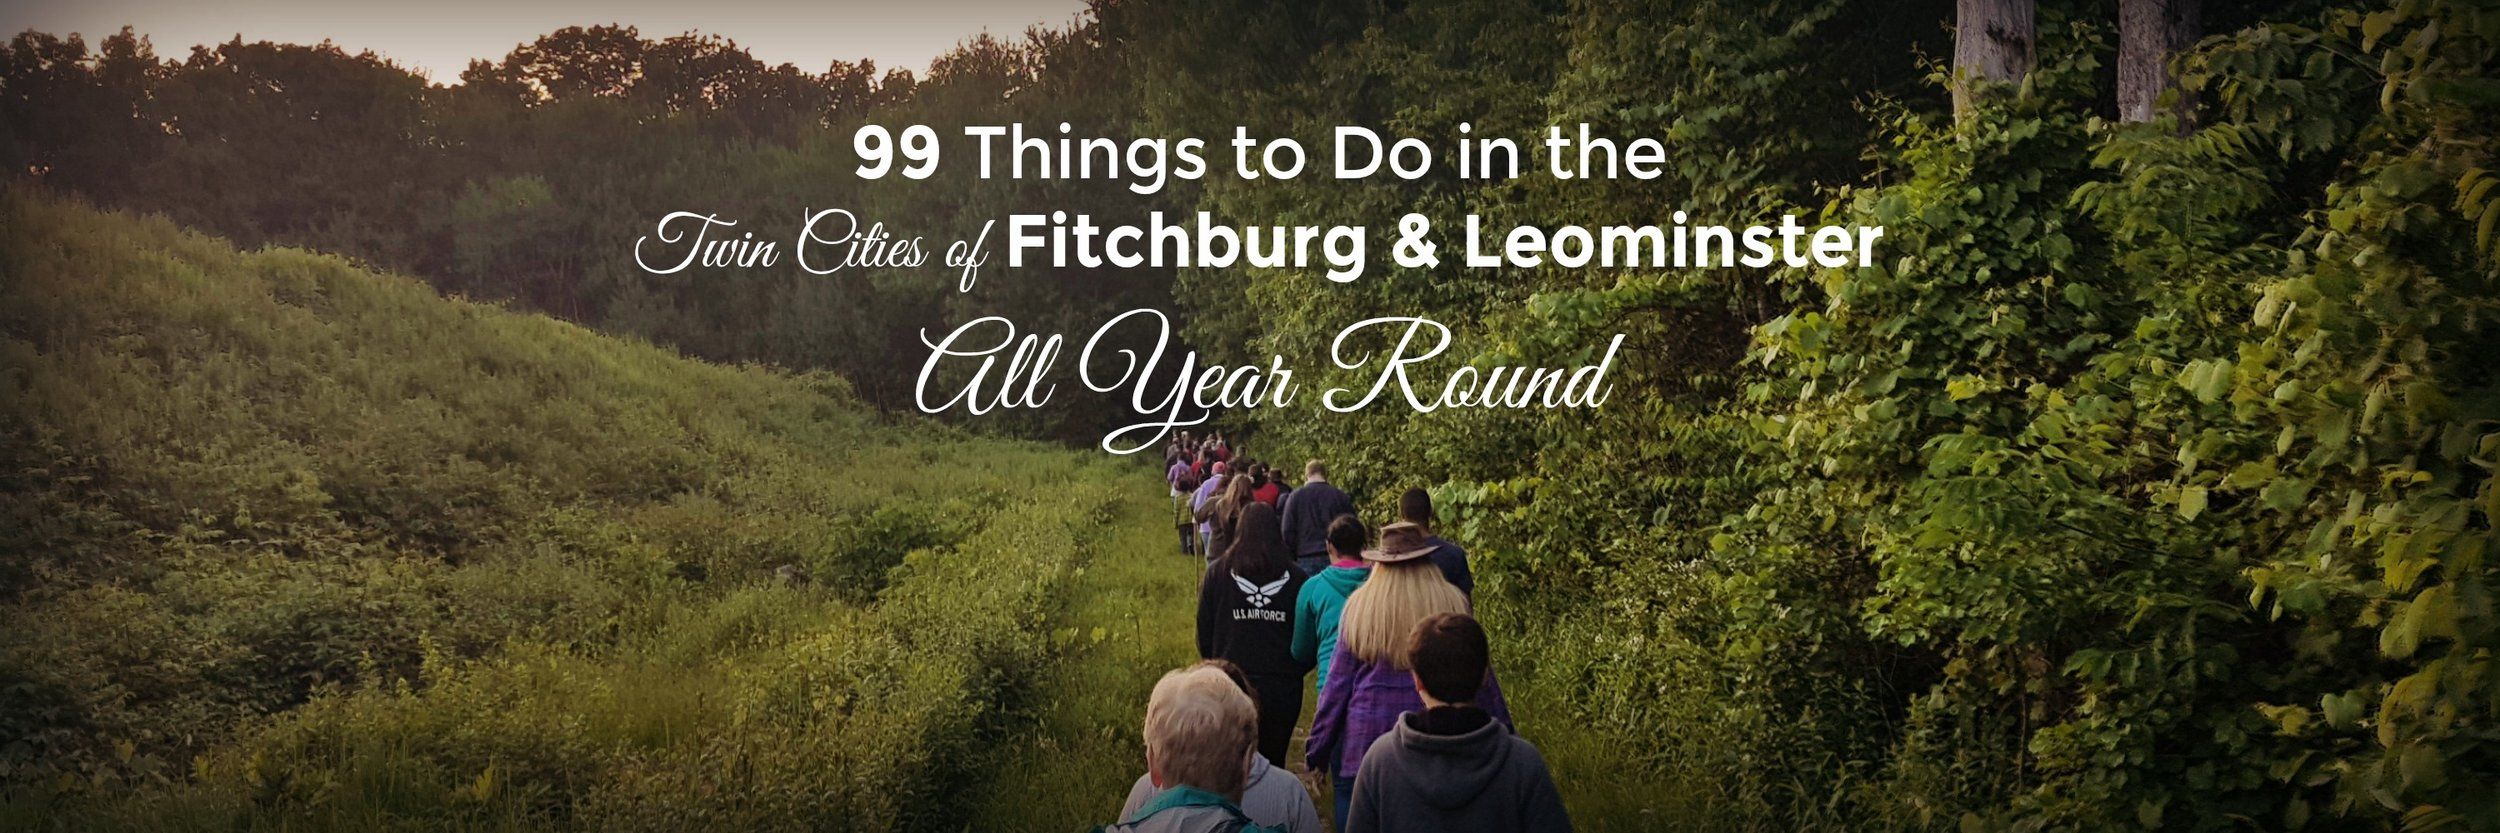 99 things to do in Fitchburg & Leominster